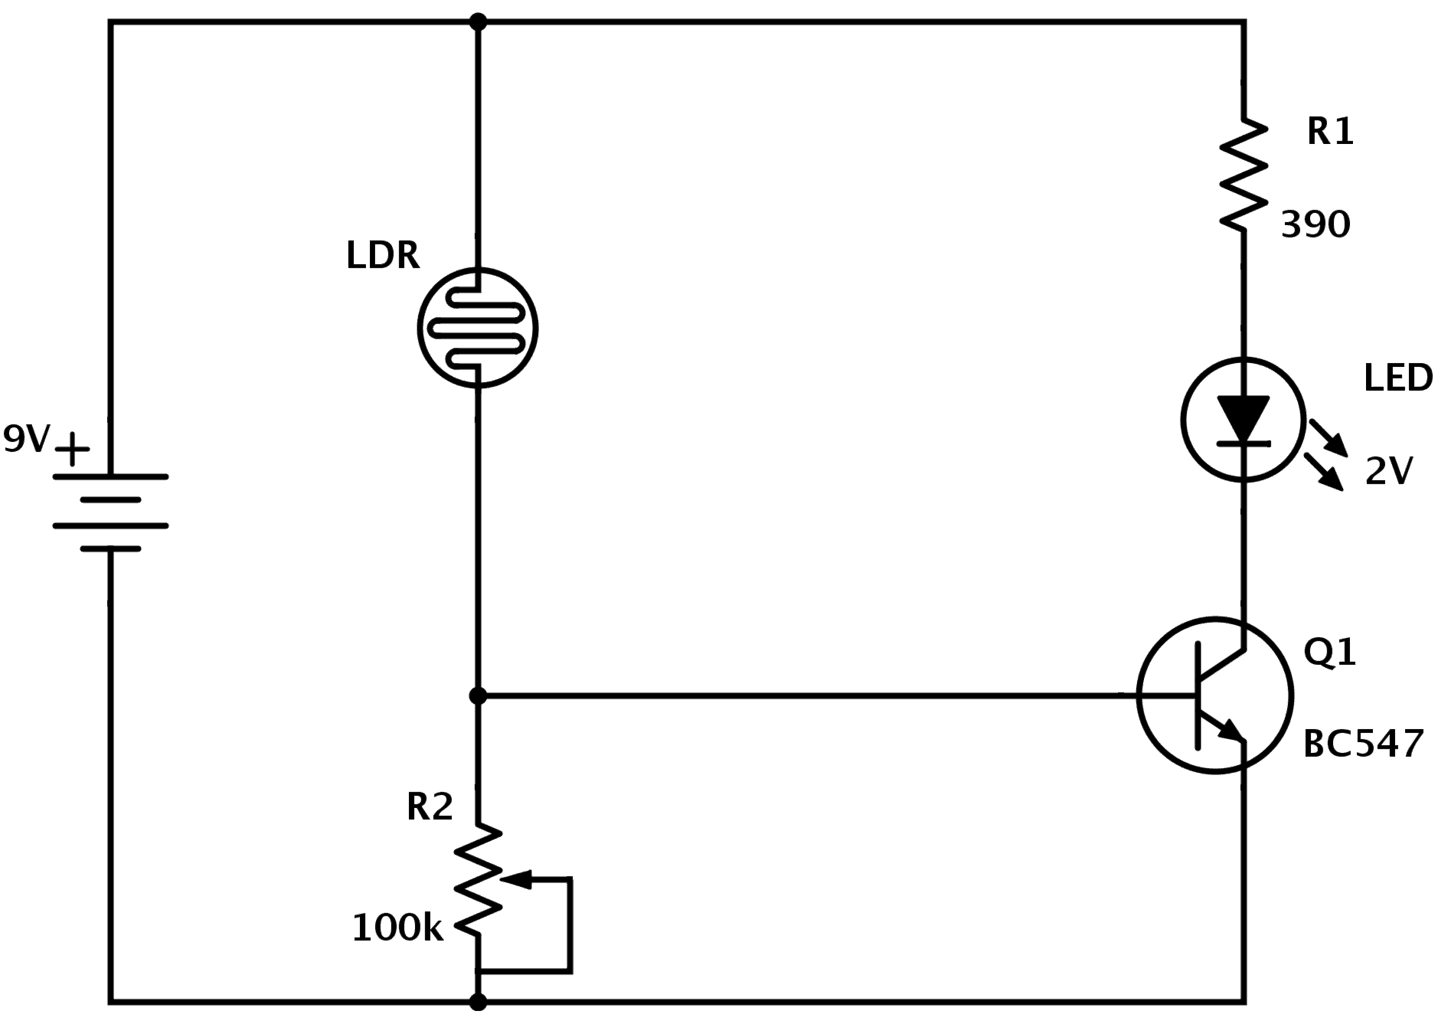 Circuit Diagram How To Read And Understand Any Schematic Wiring Cold Room Ldr